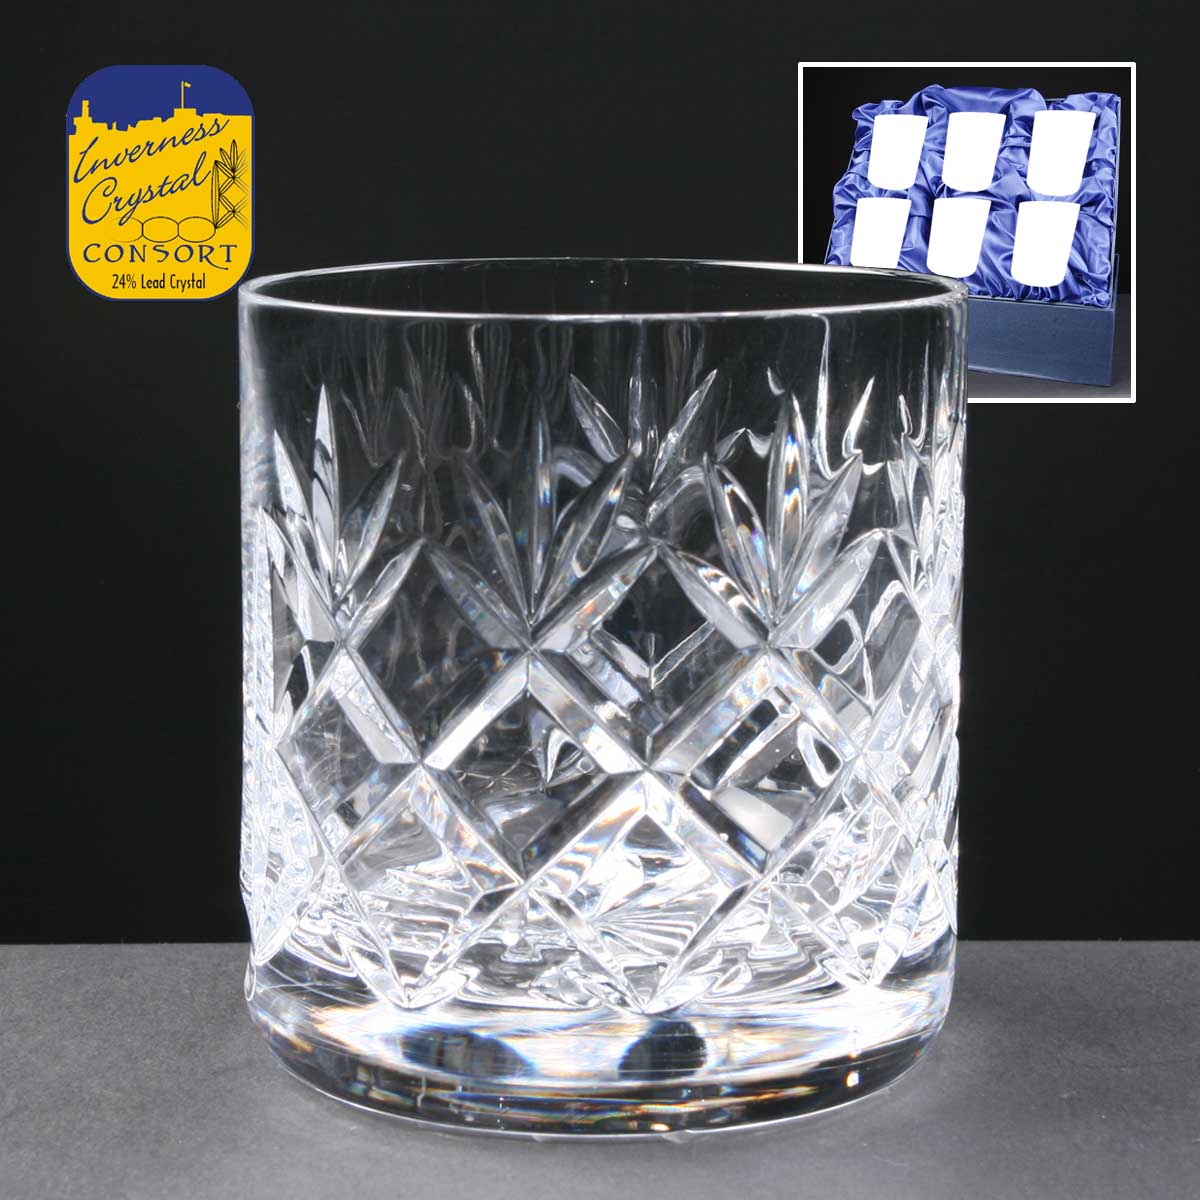 Engraved_golf_award_Inverness_Crystal_Consort_Fully_Cut_Lead_Crystal_10oz_Mixer_Glasses